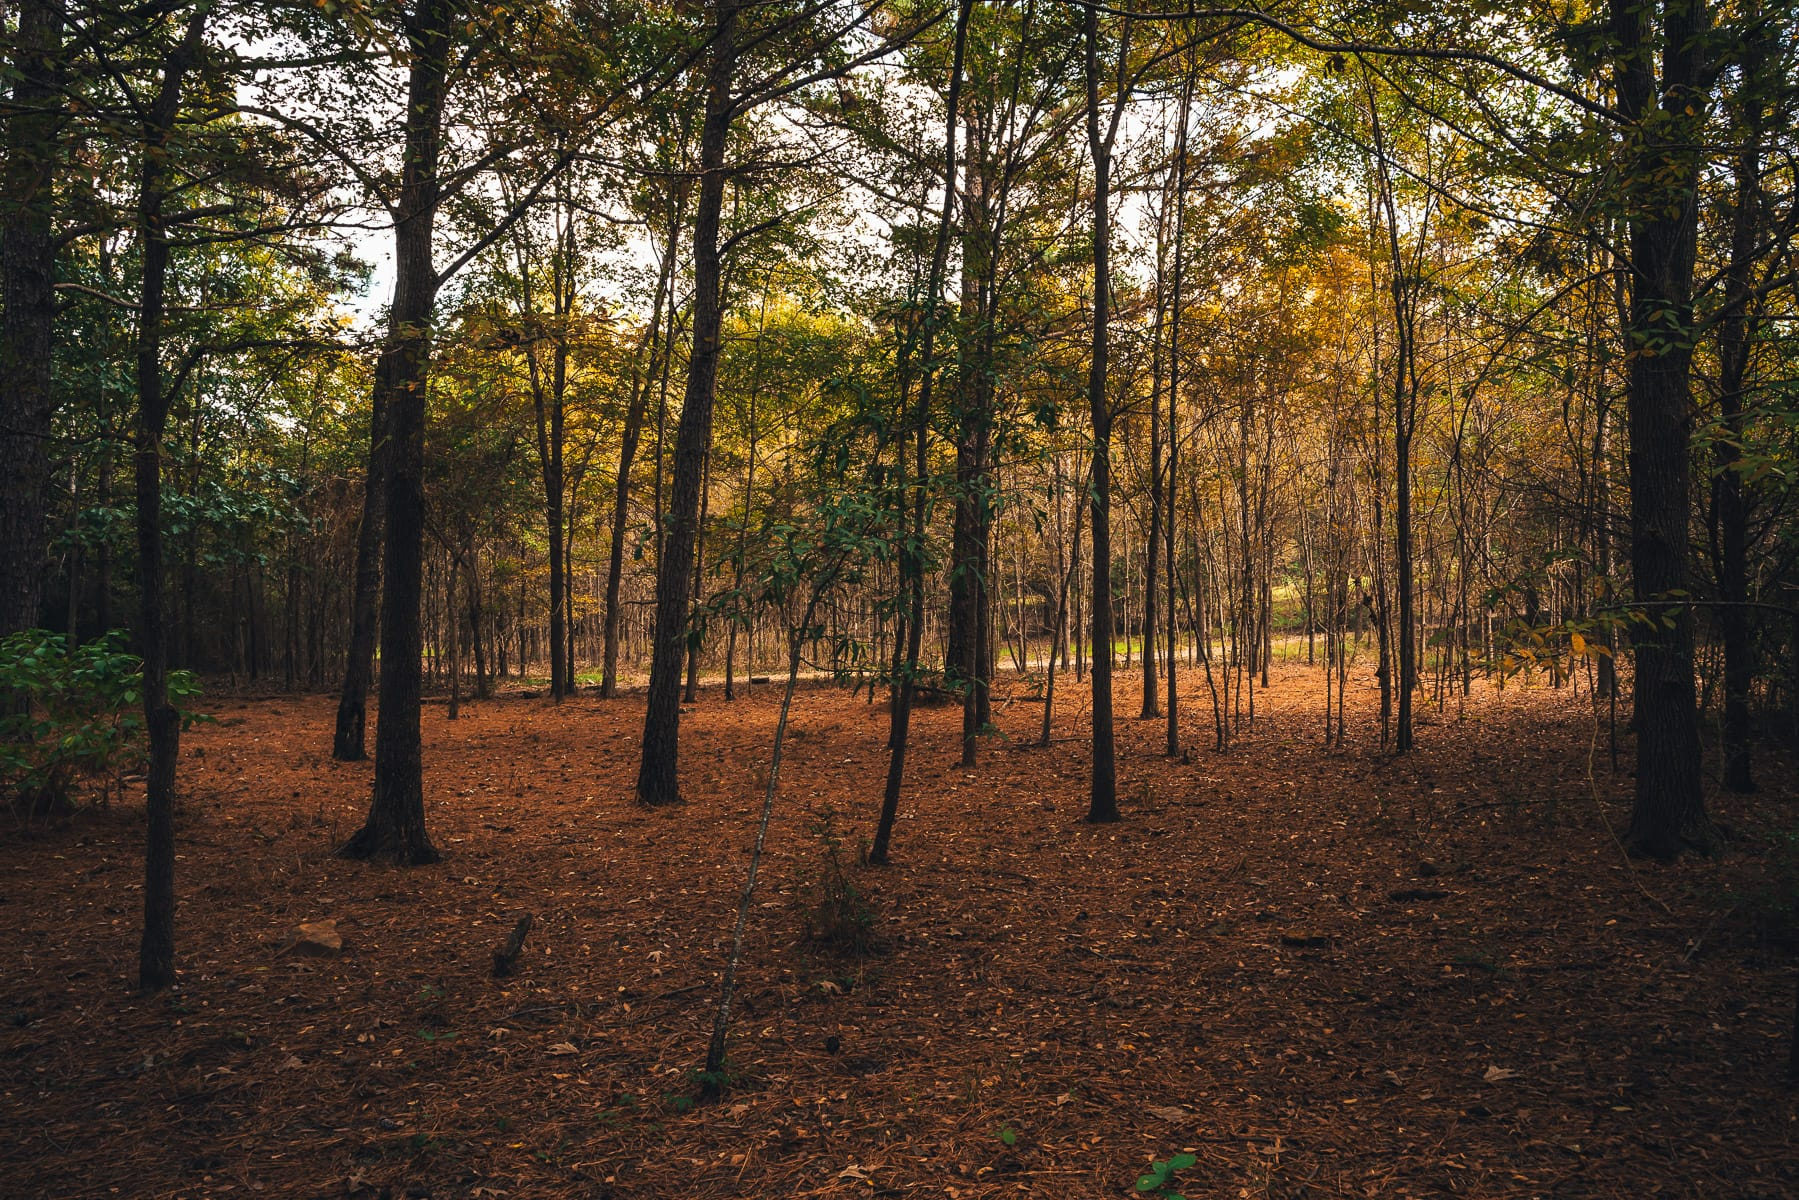 Among the trees at East Texas' Martin Creek Lake State Park.